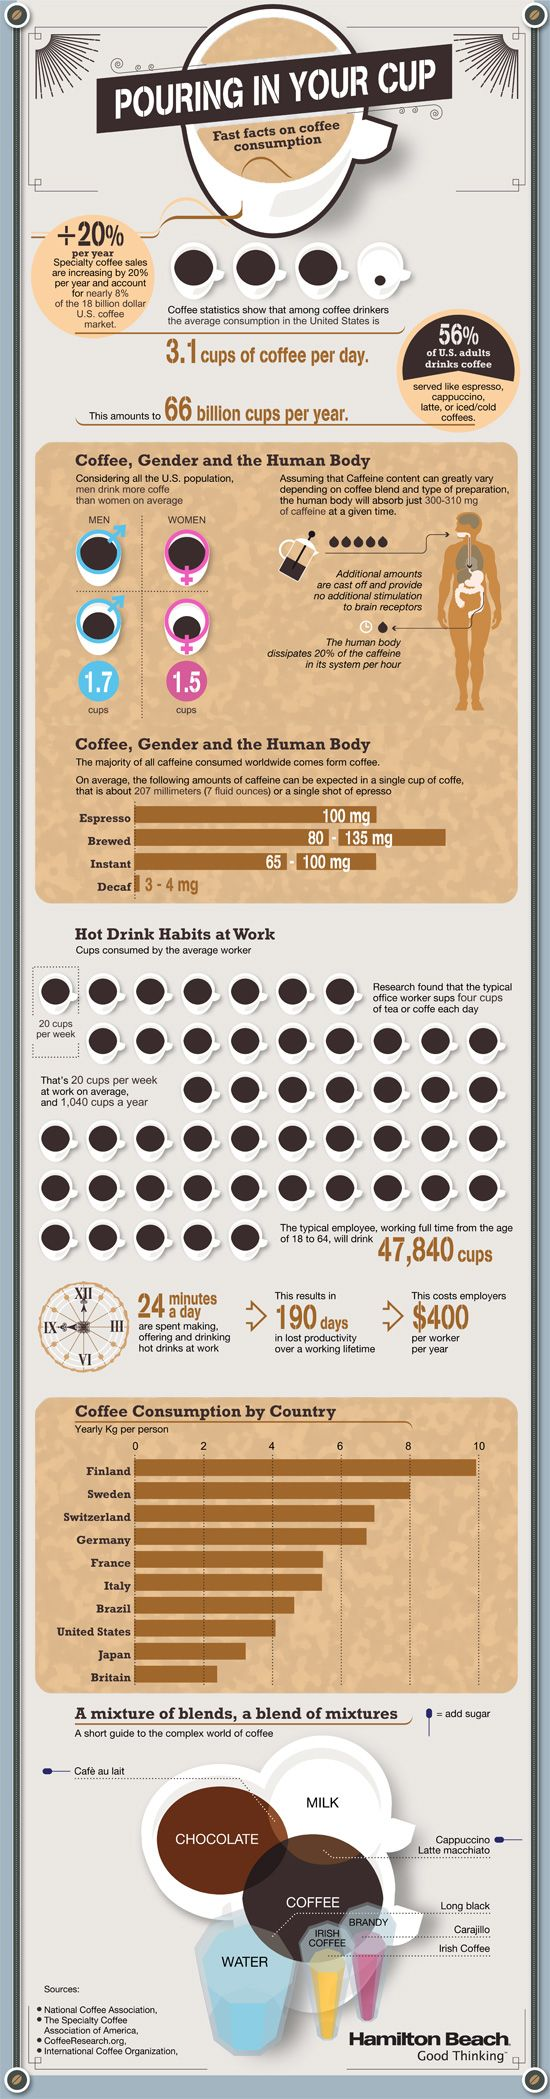 fast facts on Coffe Consumption